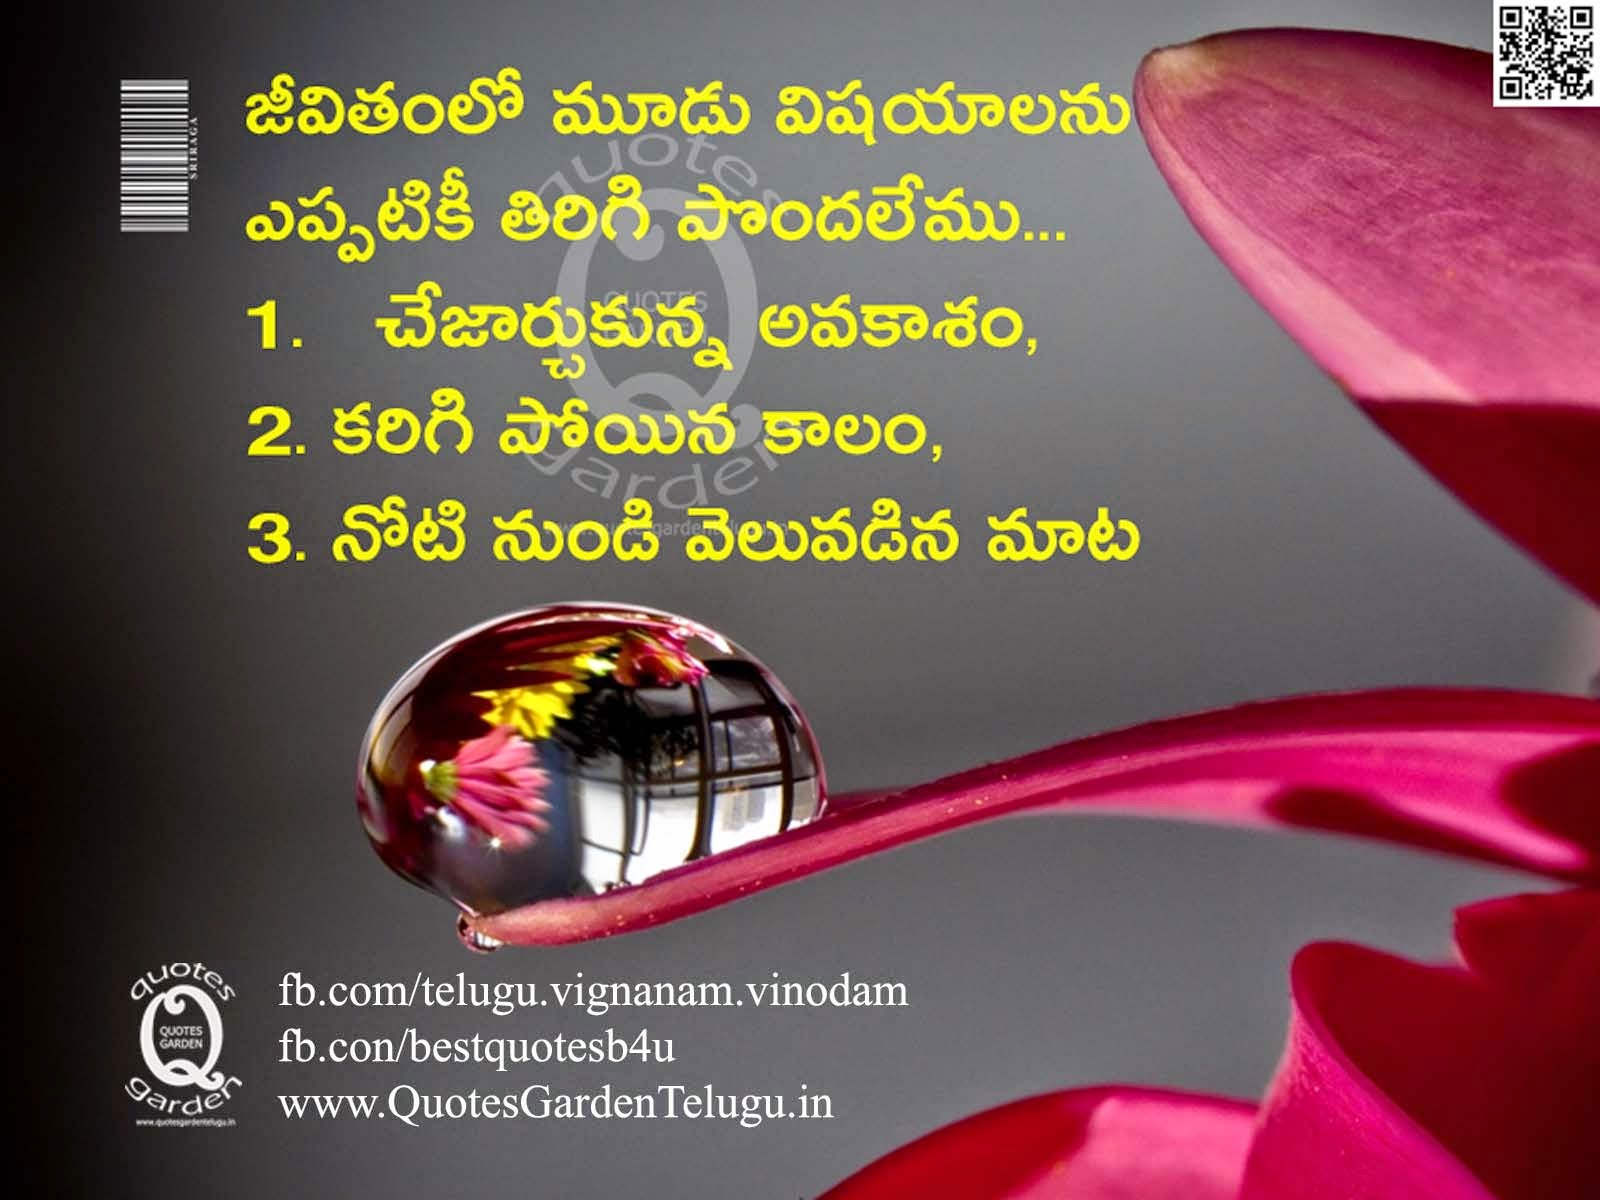 Moral Quotes About Love Telugu Best Inspirational Life Quotes With Best Images And Cool